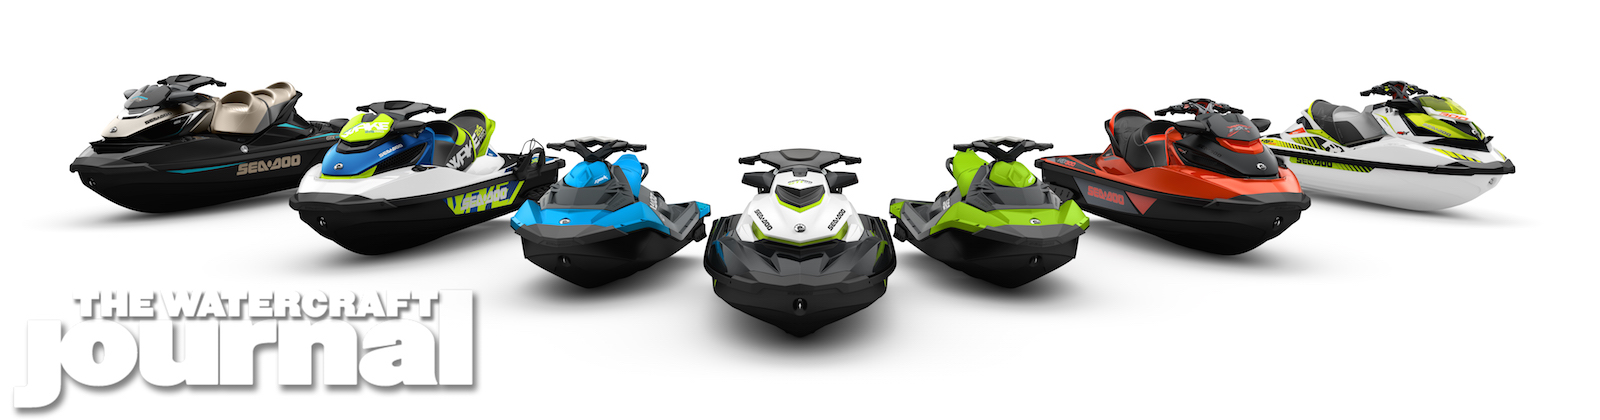 Spark Group Through Its Recreation Sport Luxury And Performance Lines Sea Doo Looked To Satisfy